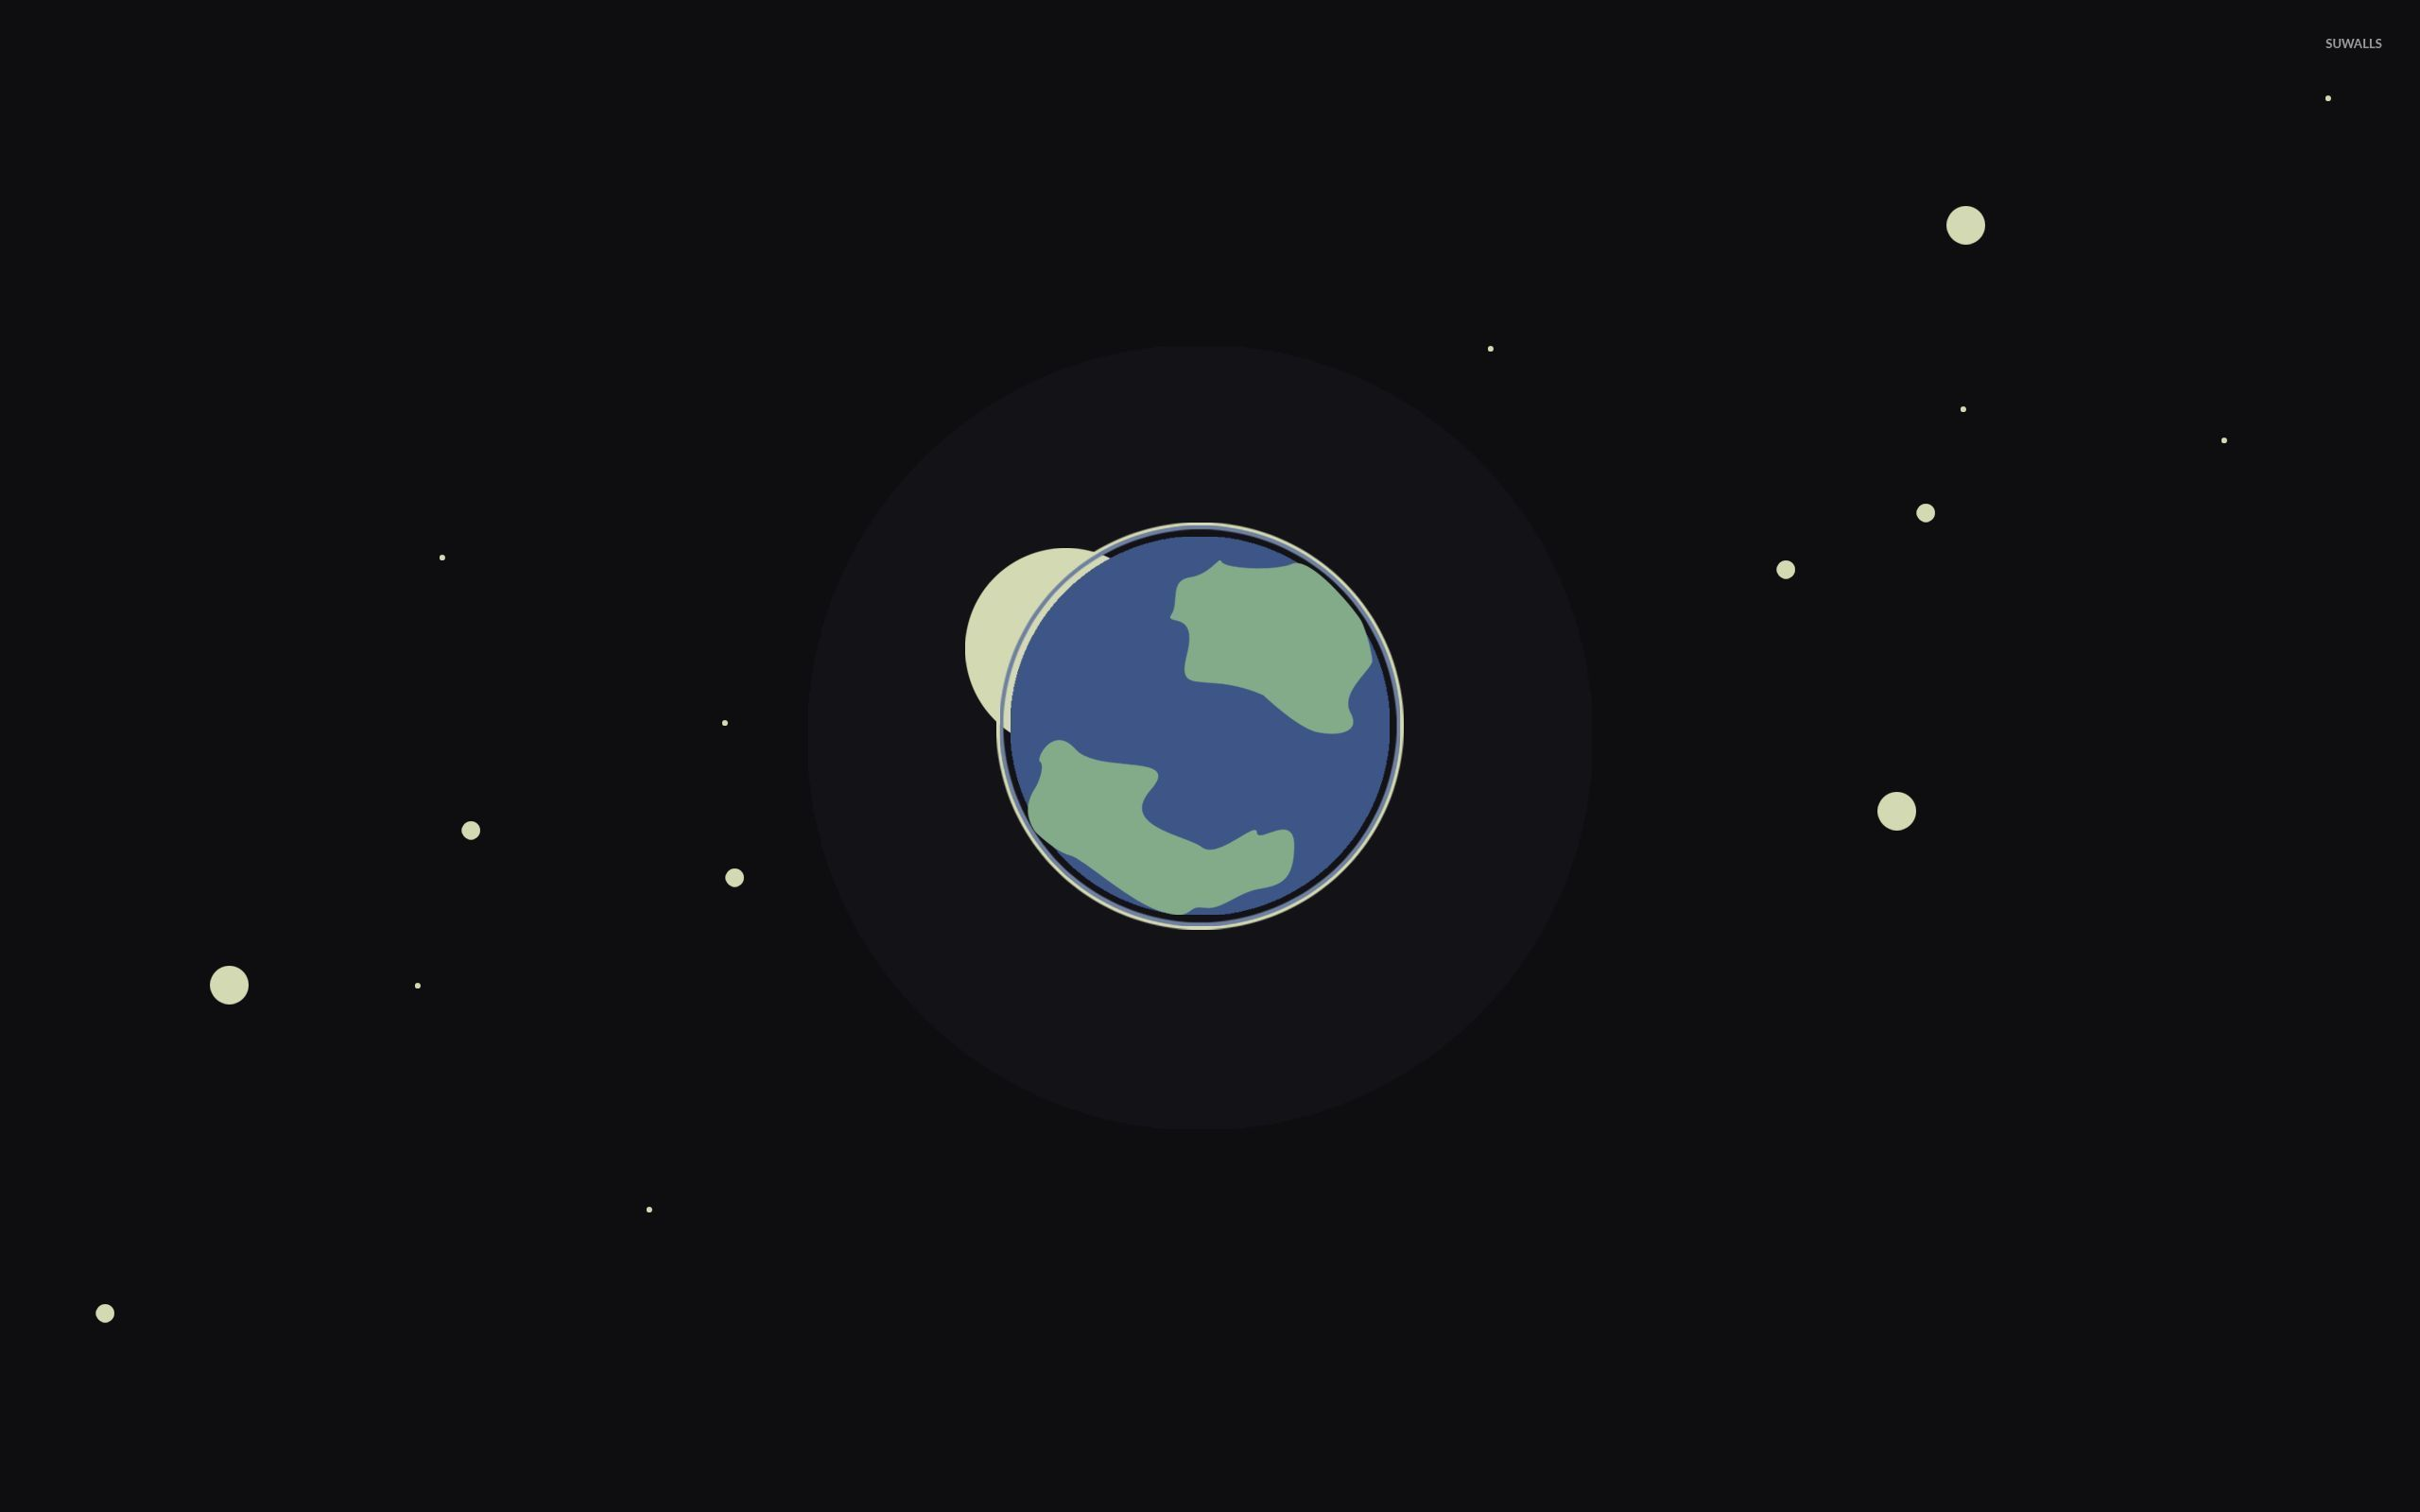 Earth Moon And Stars Wallpaper 2560x1600 Jpg